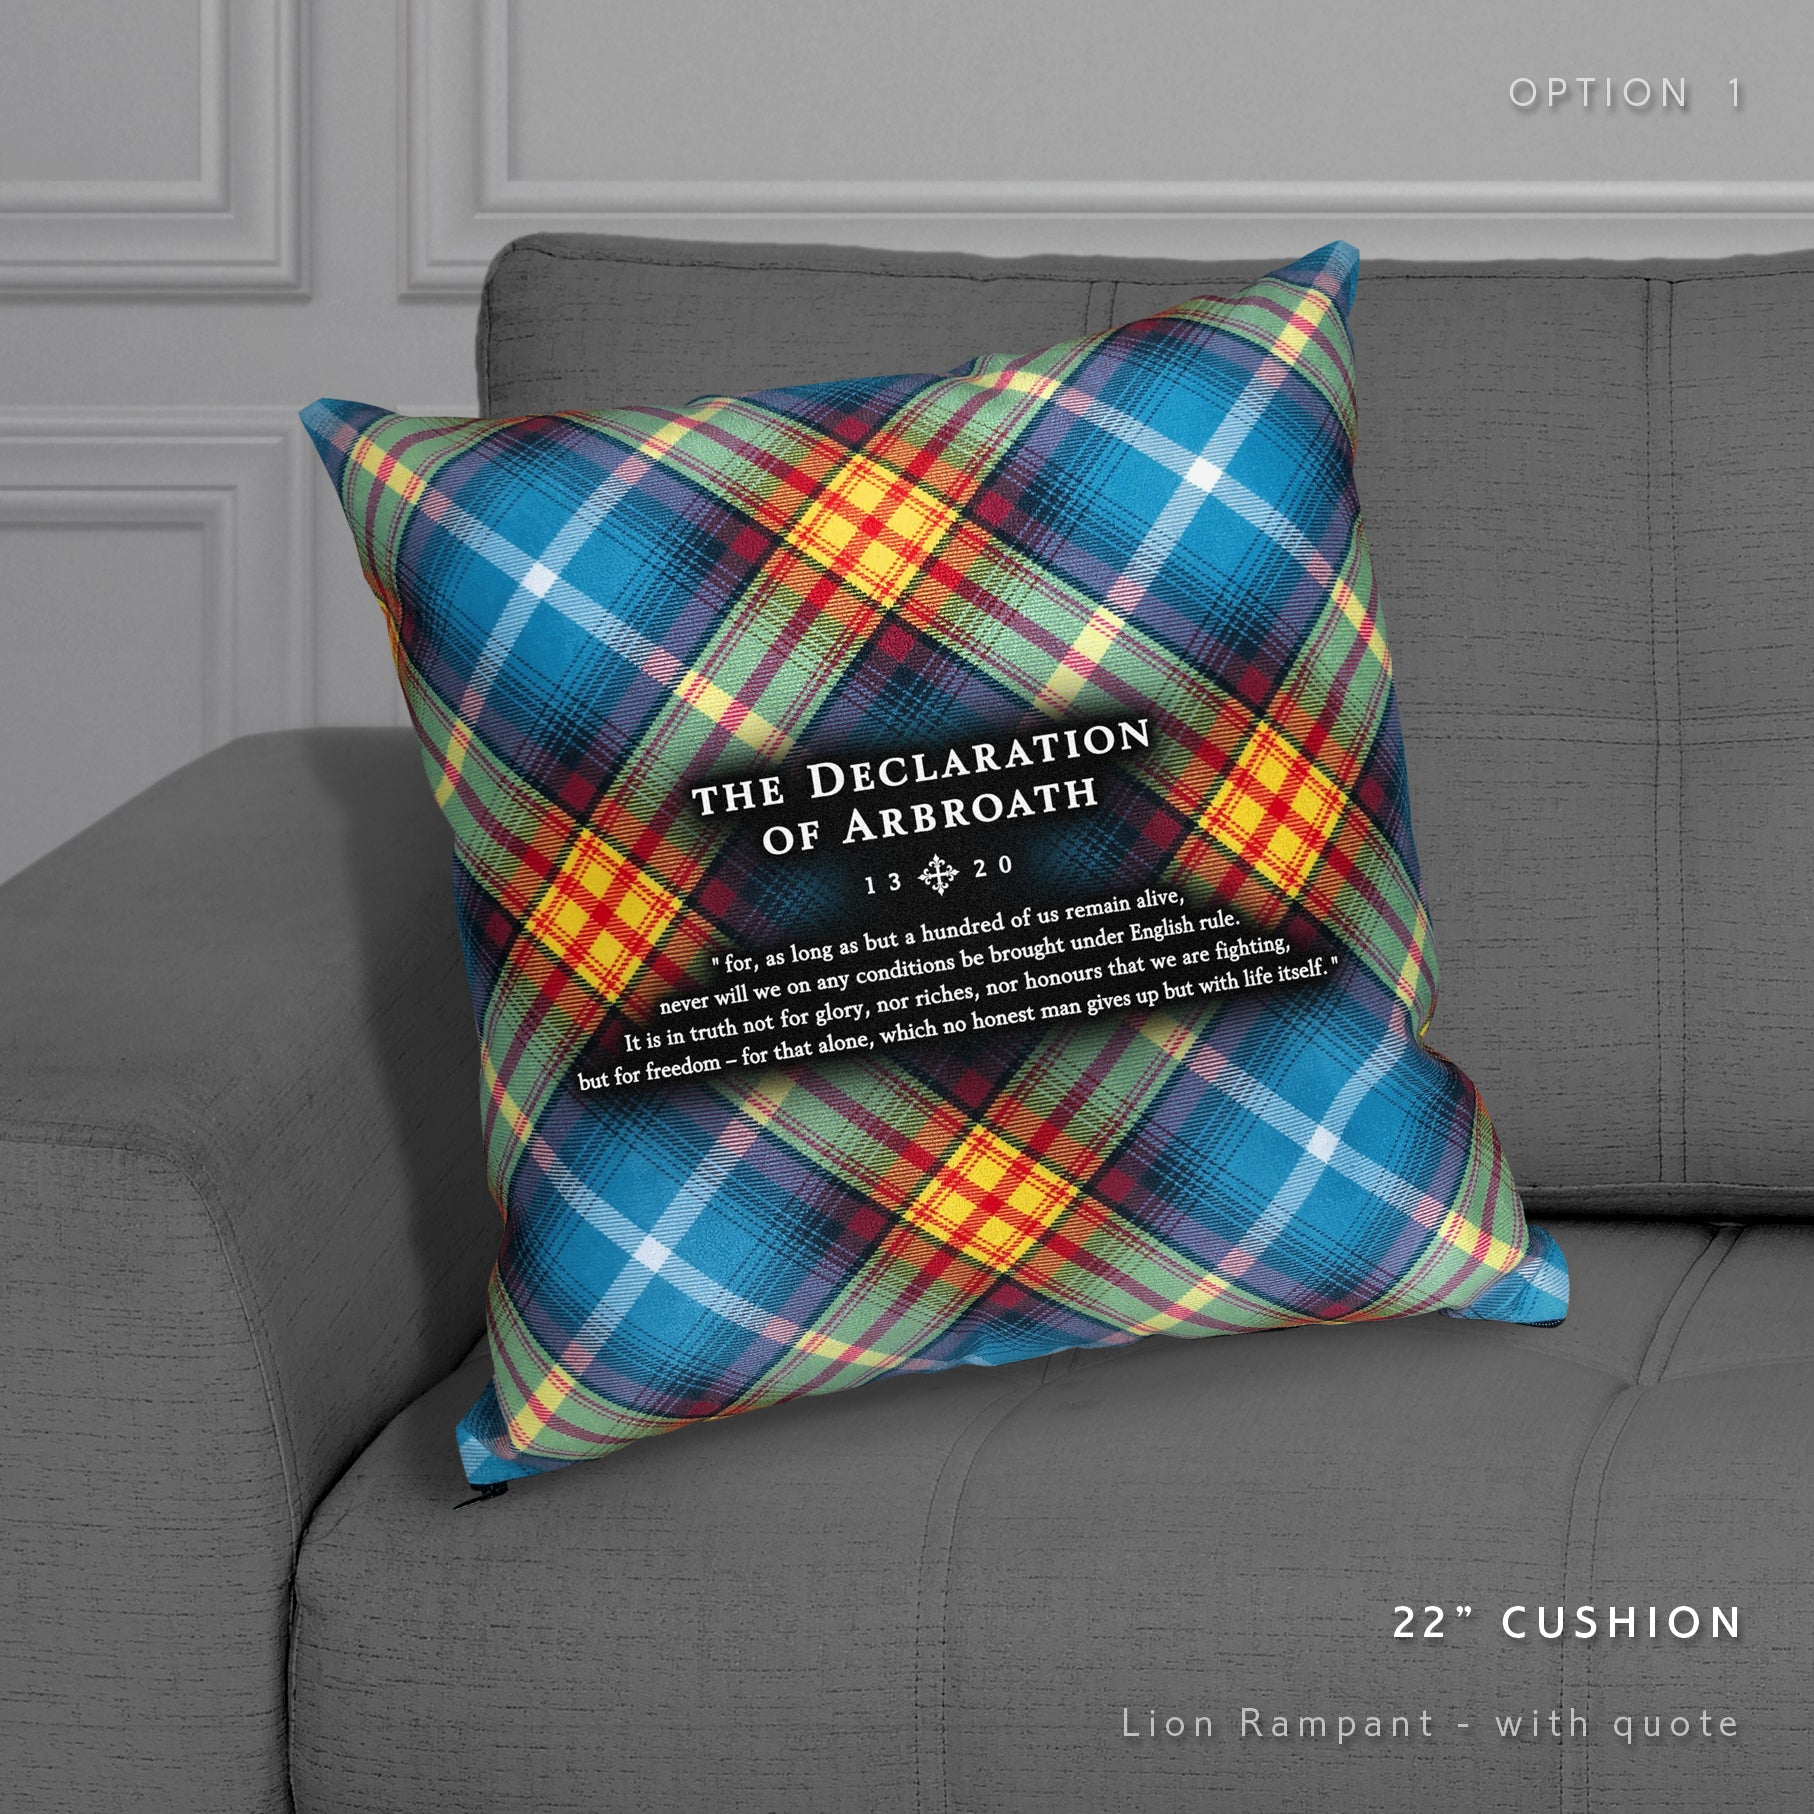 Declaration of Arbroath tartan cushion by the Tartan Artisan